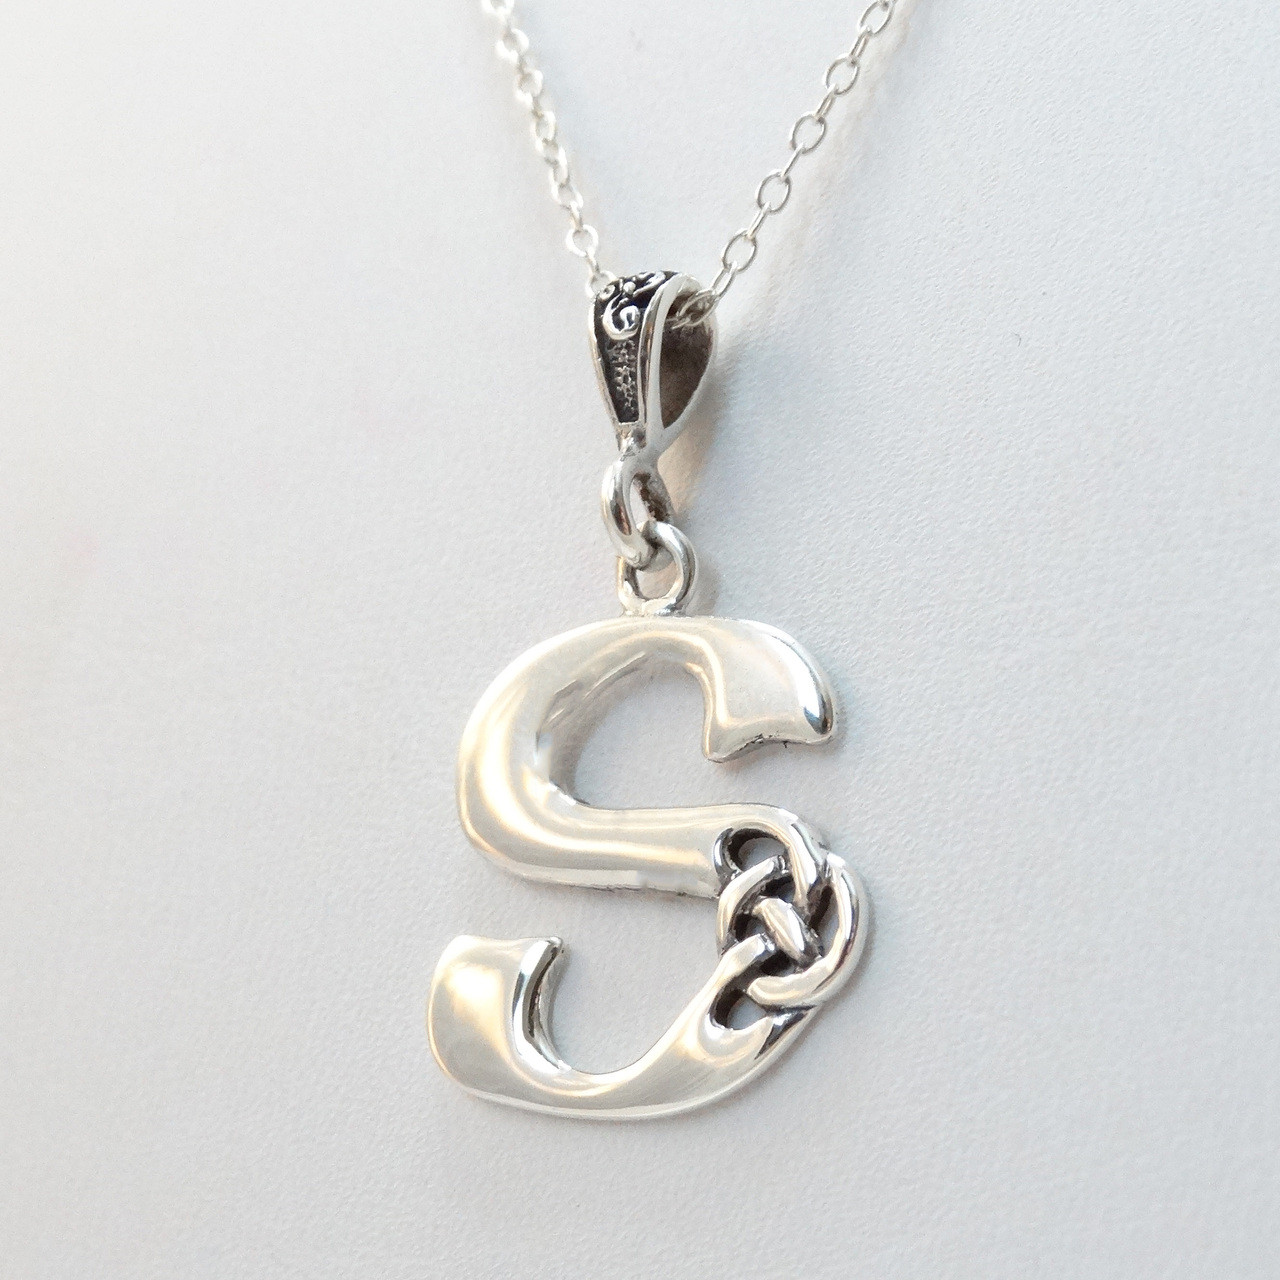 jewelry cz co pendant cursive alphabet letter inches dp s necklace plated jewellery amazon uk rhodium bling